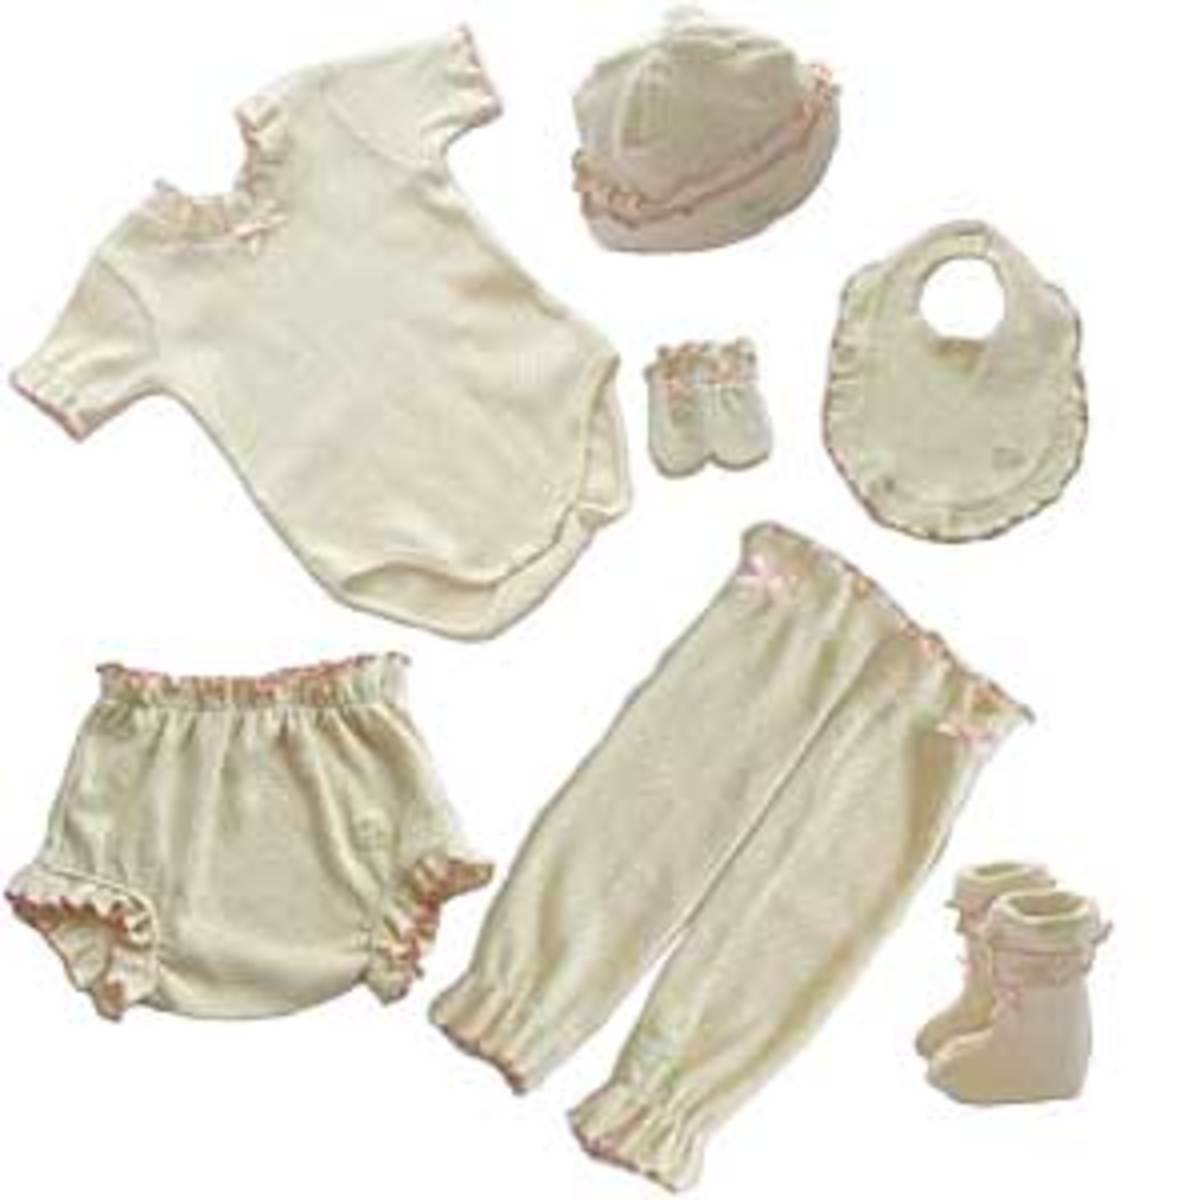 newborn organic cotton pink pointelle outfit found at Time Well Spent.